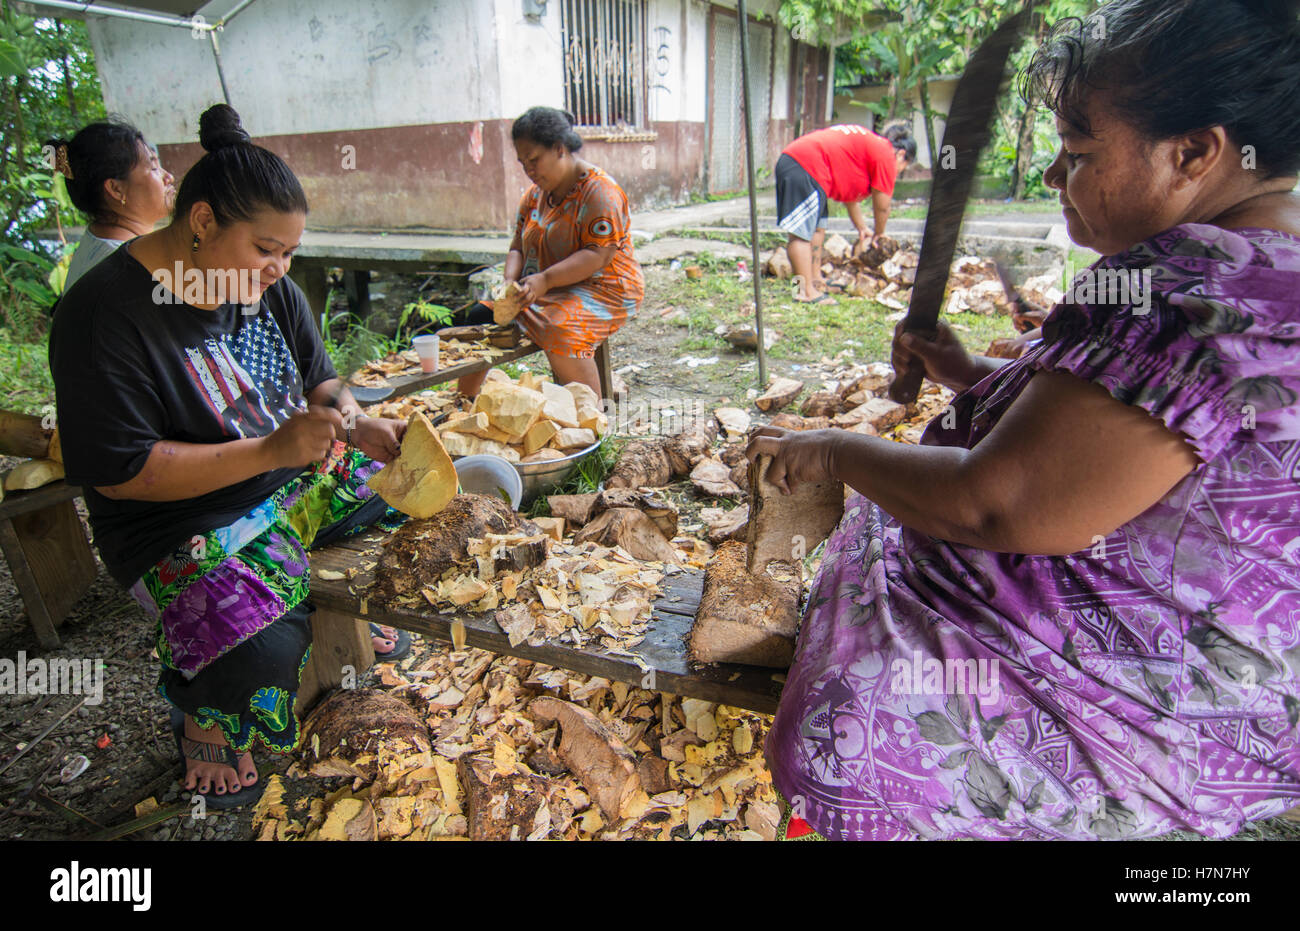 Pohnpei Micronesia women cutting taro root with knives in outdoor kitchen for selling - Stock Image